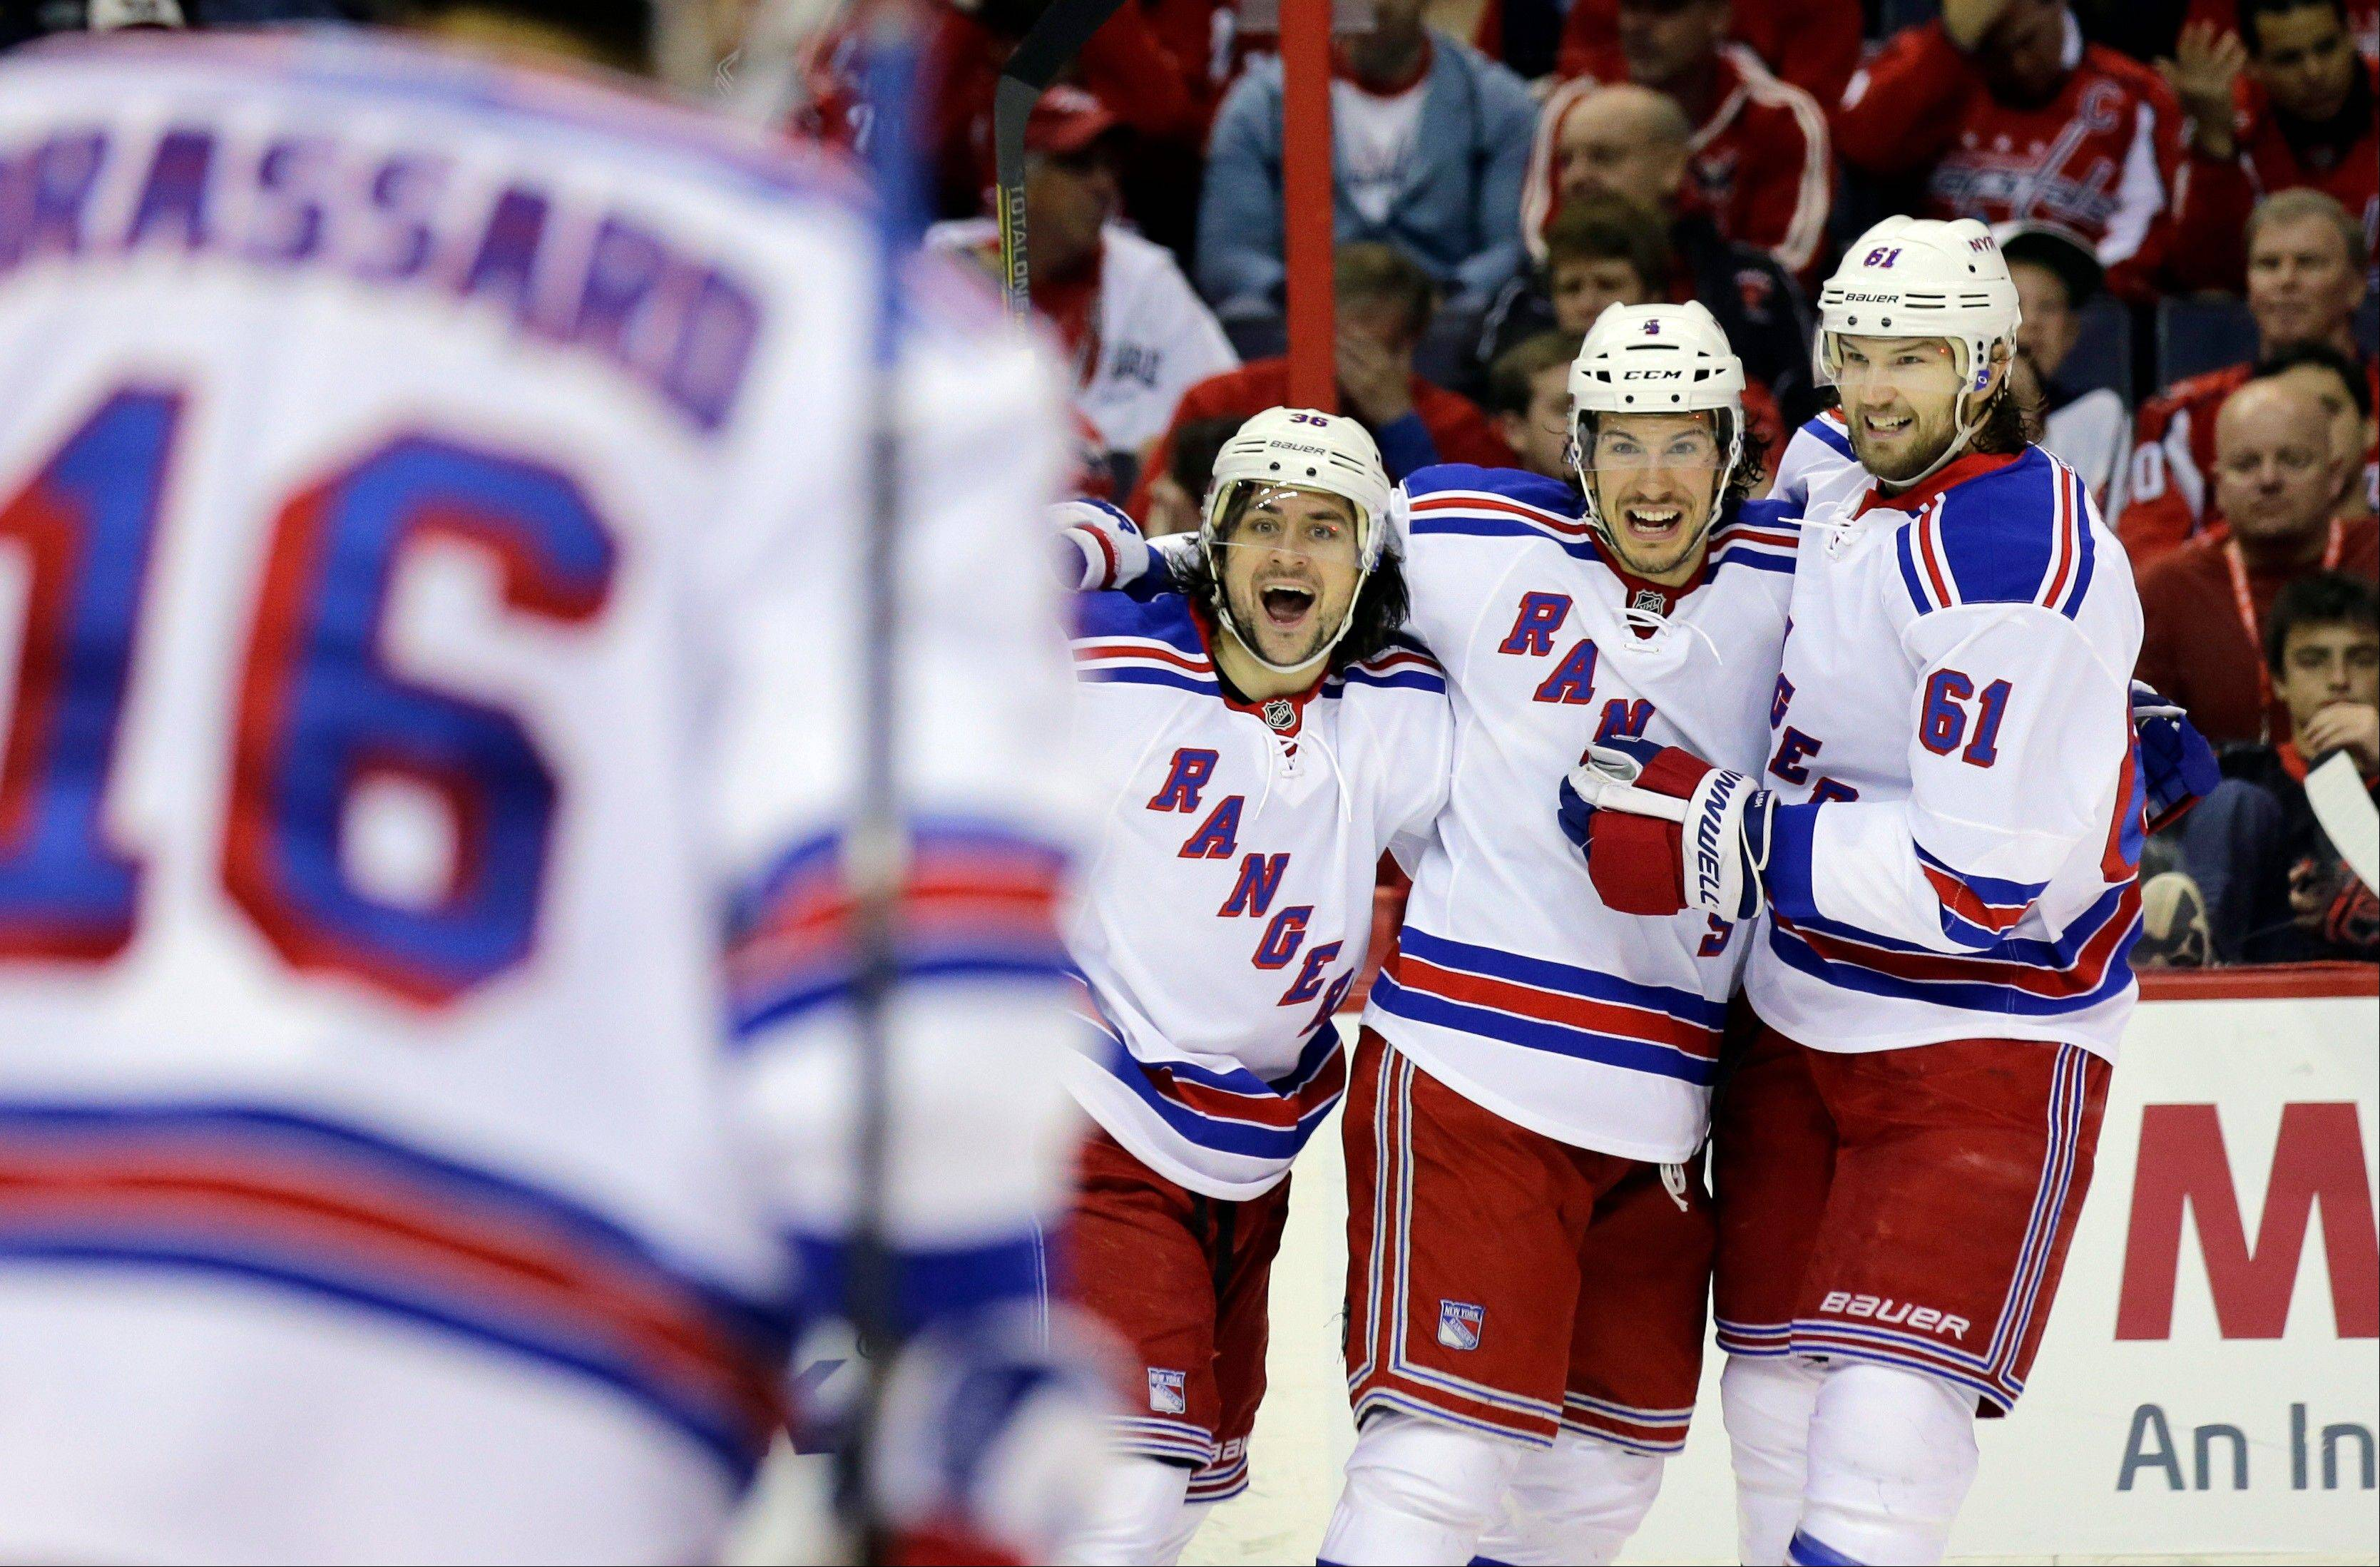 New York Rangers right wing Mats Zuccarello (36), defenseman Michael Del Zotto (4), and left wing Rick Nash (61) celebrate Del Zotto's goal in the second period, of Game 7 first-round NHL Stanley Cup playoff hockey series against the Washington Capitals, Monday, May 13, 2013 in Washington.